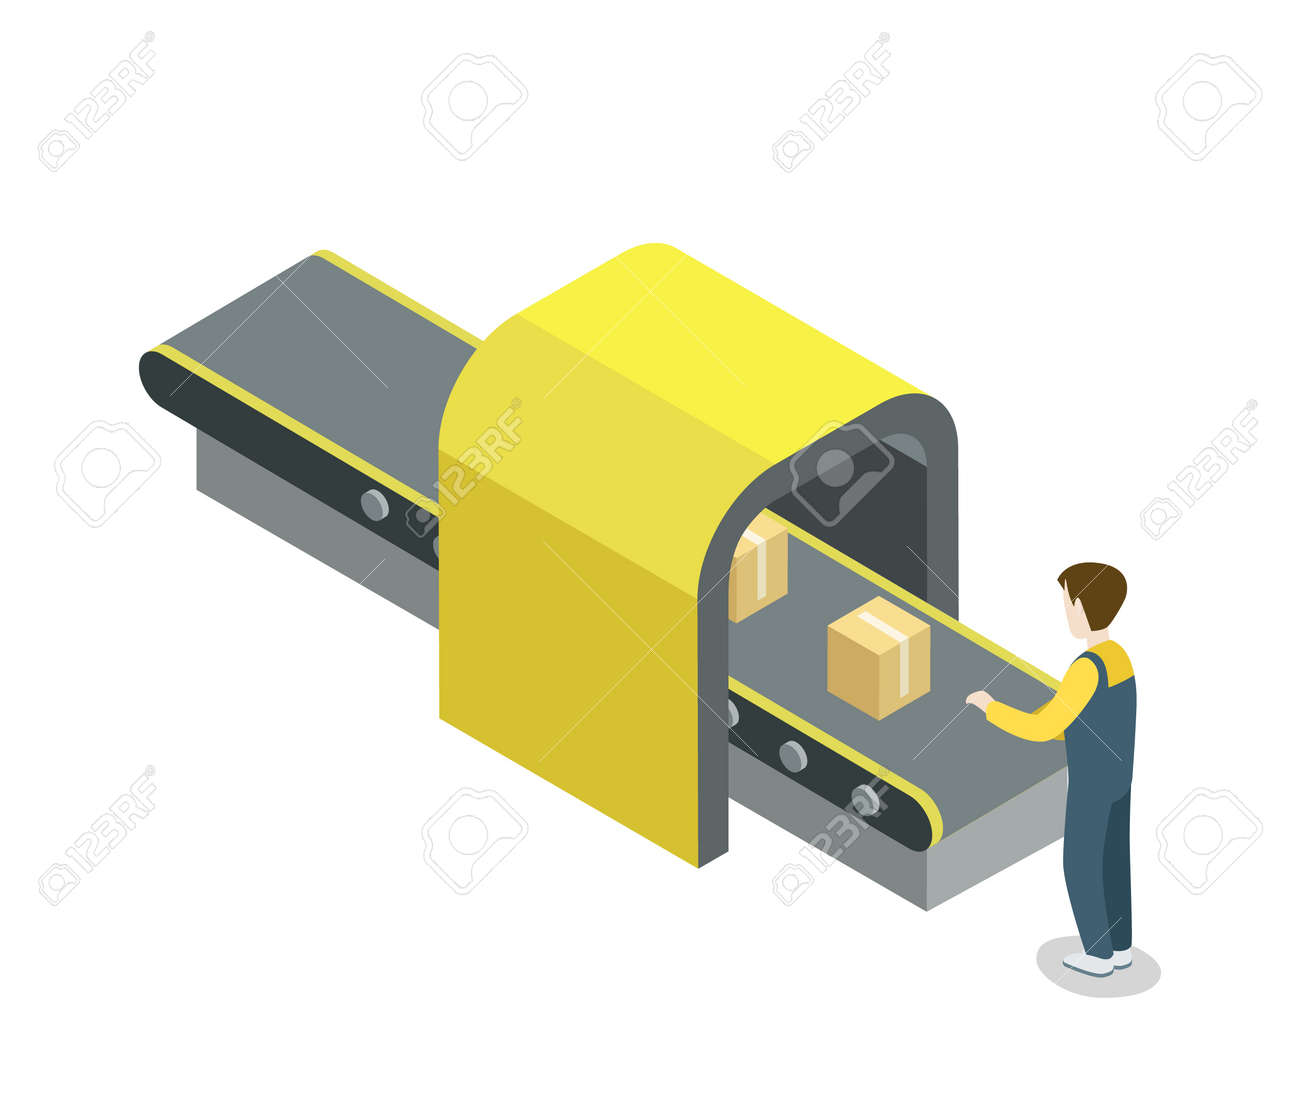 Worker near belt production line isometric 3D icon. Industrial goods production, mechanical conveyor manufacturing process, assembly line vector illustration. - 90756884